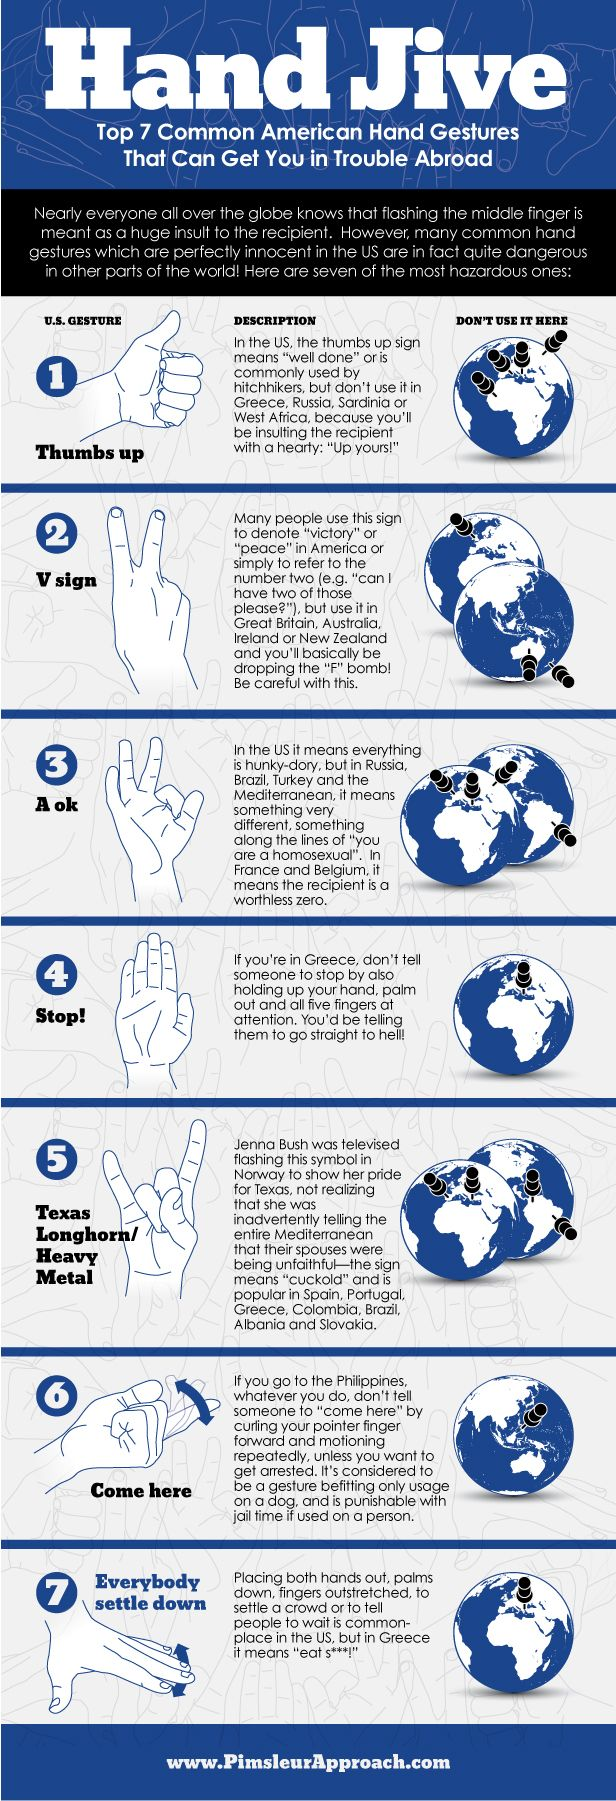 "HAND JIVE poster infographic shoes some more hand signals adopted by Hearing cultures in America but are not understood to mean the same thing in other areas; this warns you where to avoid them as it could be some serious trouble for ya! *Not ""Sign Language"" just gestures to take note of :)"